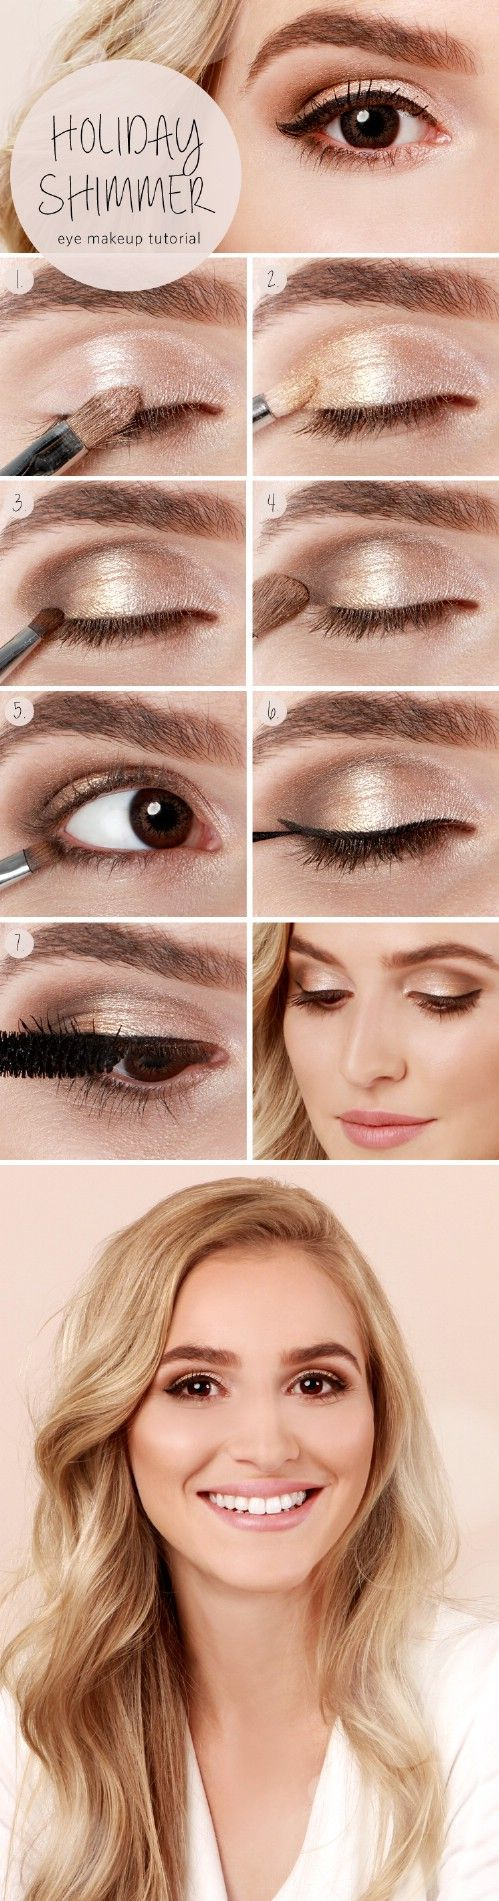 Simple And Cute Christmas Makeup Ideas - styles4woman